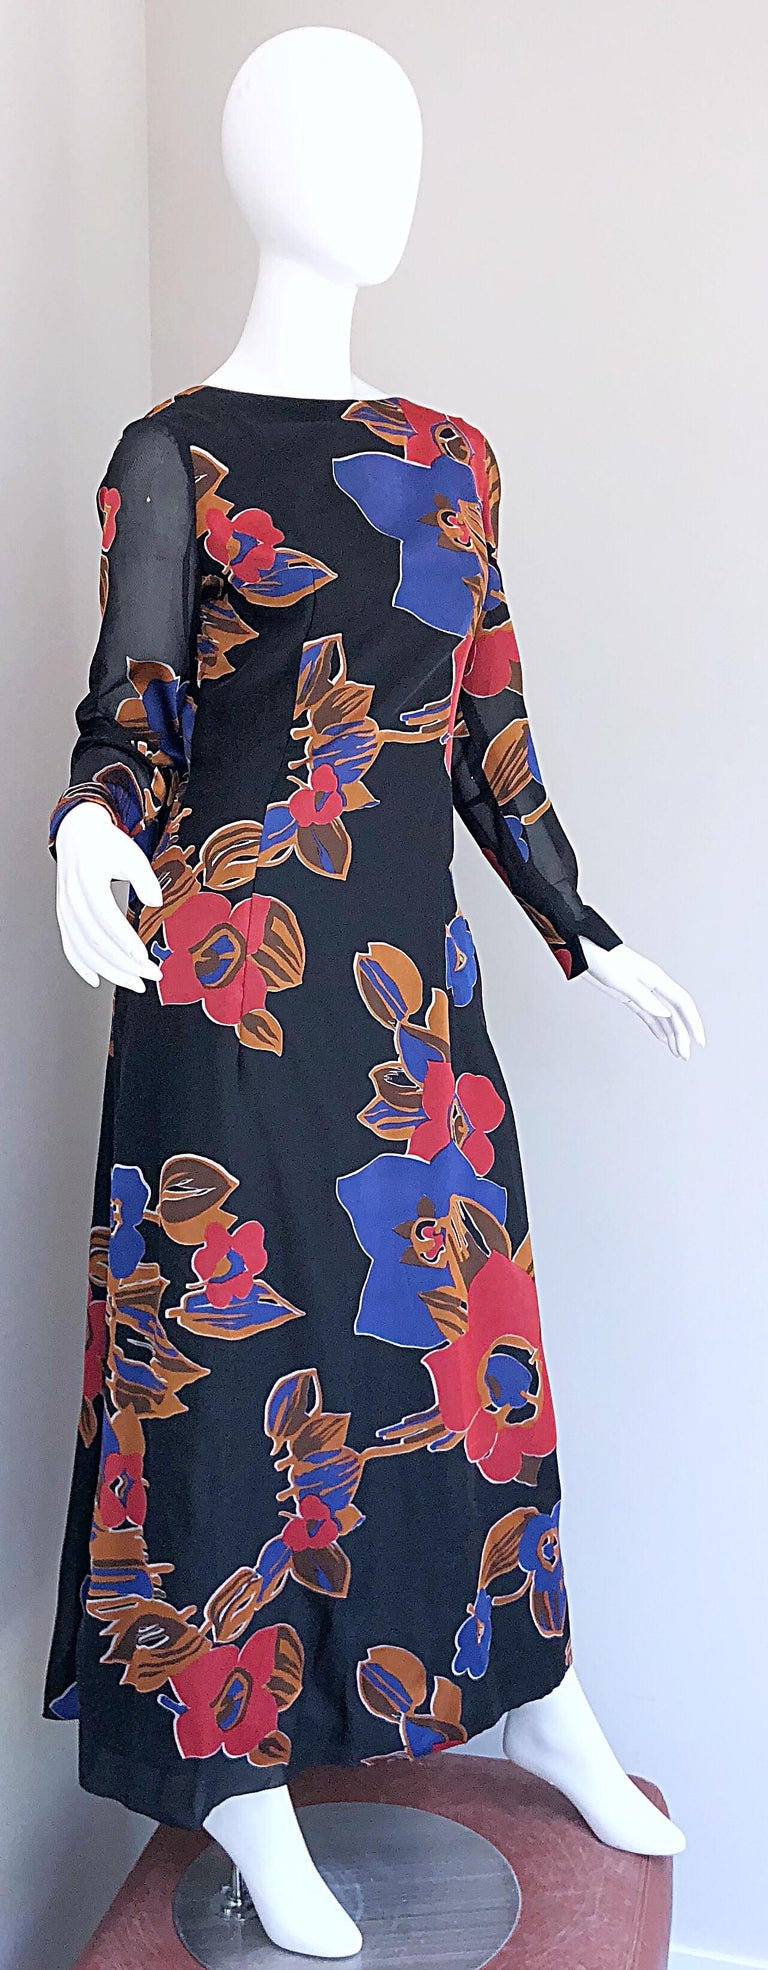 1960s John Boyle Bishop Black + Brown + Red Abstract Trained 60s Gown Maxi Dress For Sale 2